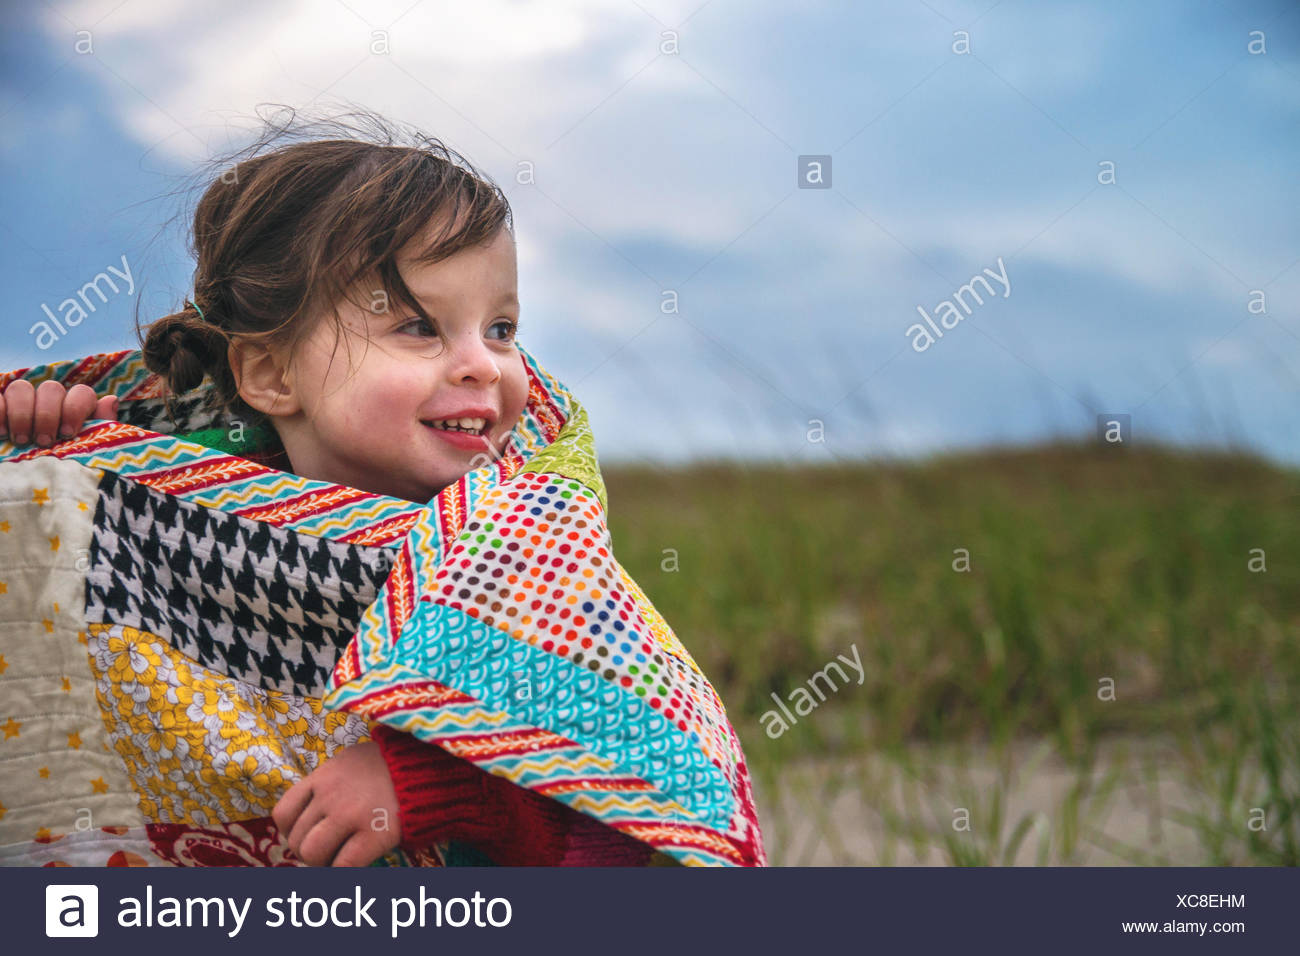 Smiling girl wrapped in a blanket outdoors - Stock Image